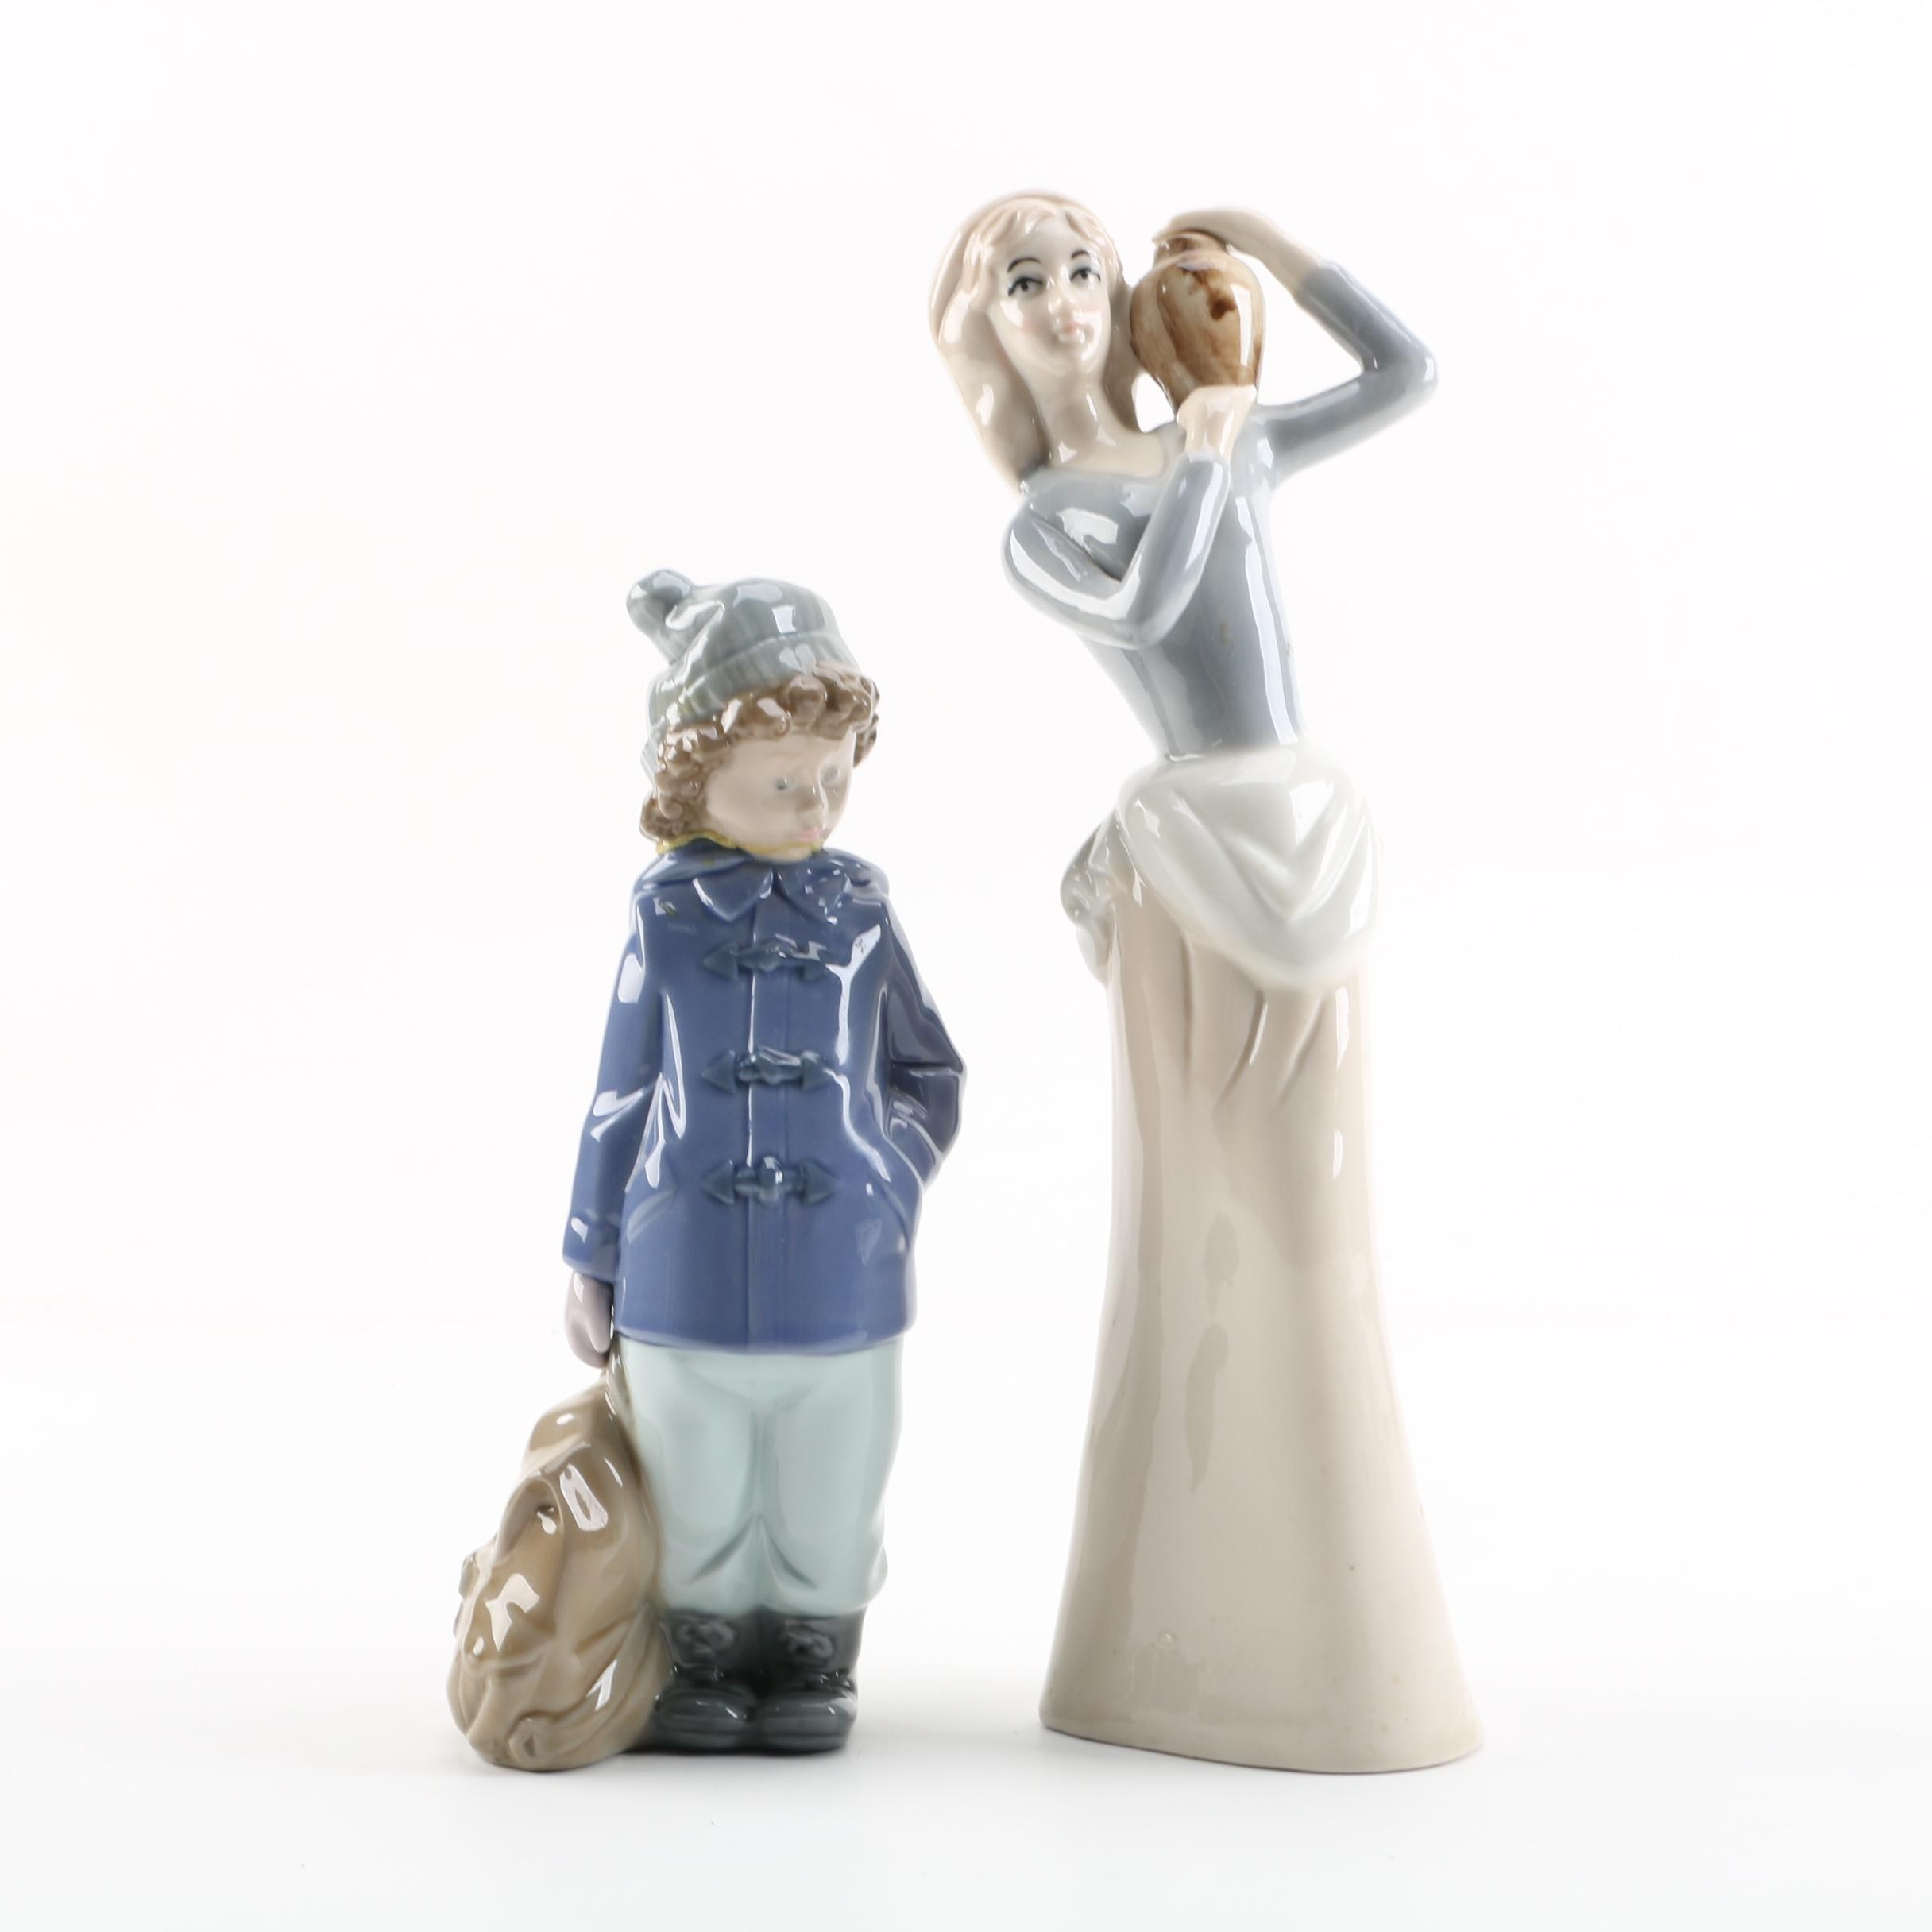 Nao by Lladó and other Porcelain Figurine